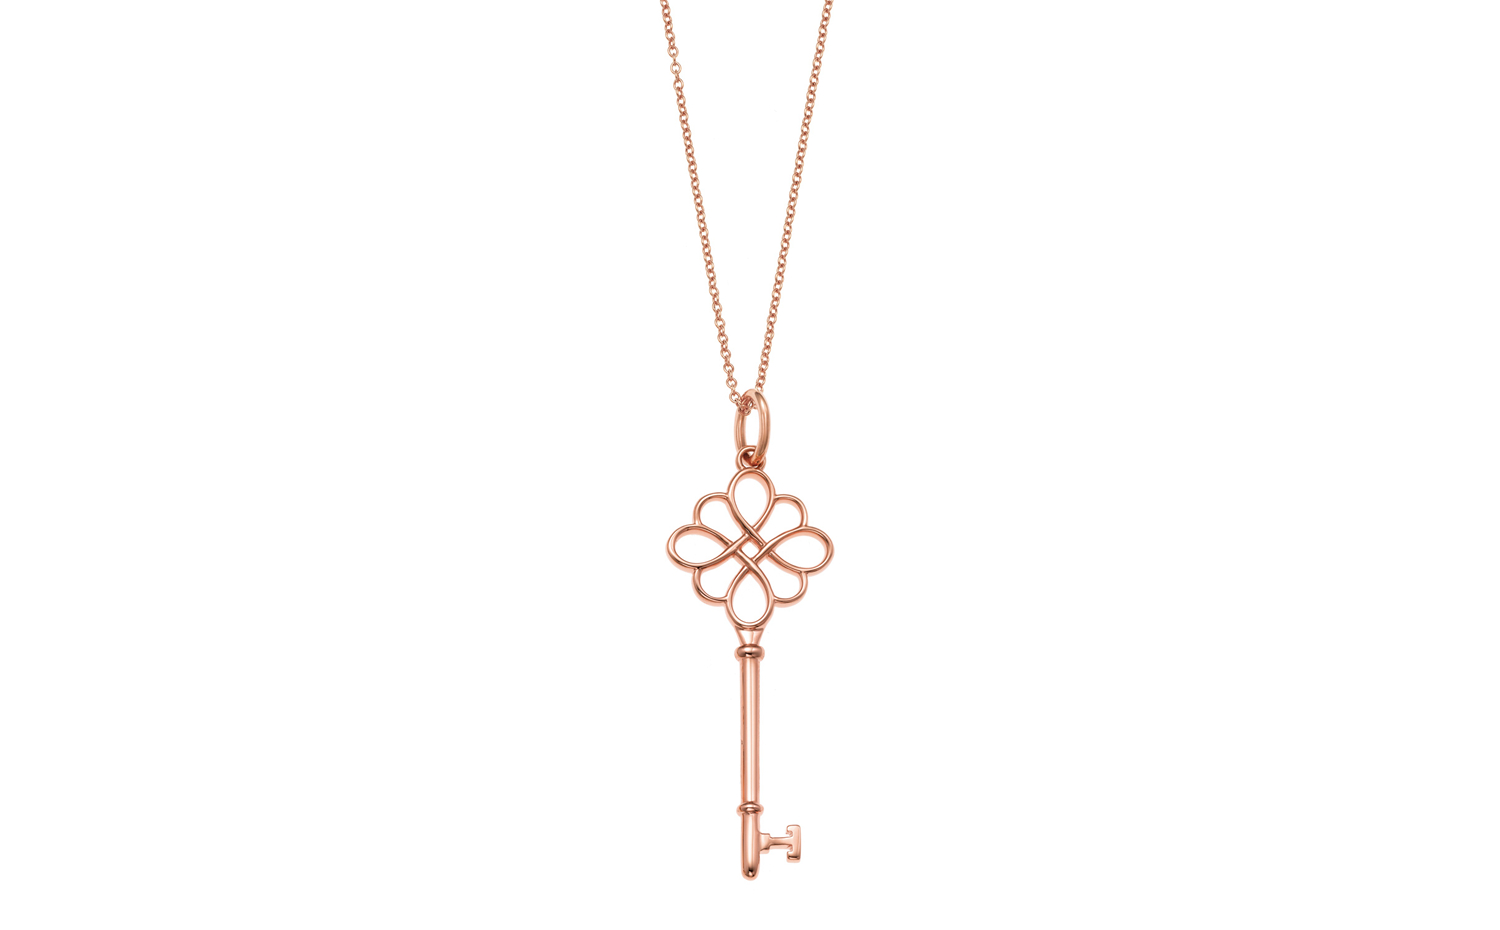 Tiffany Keys Knot Key Pendant in Rose Gold